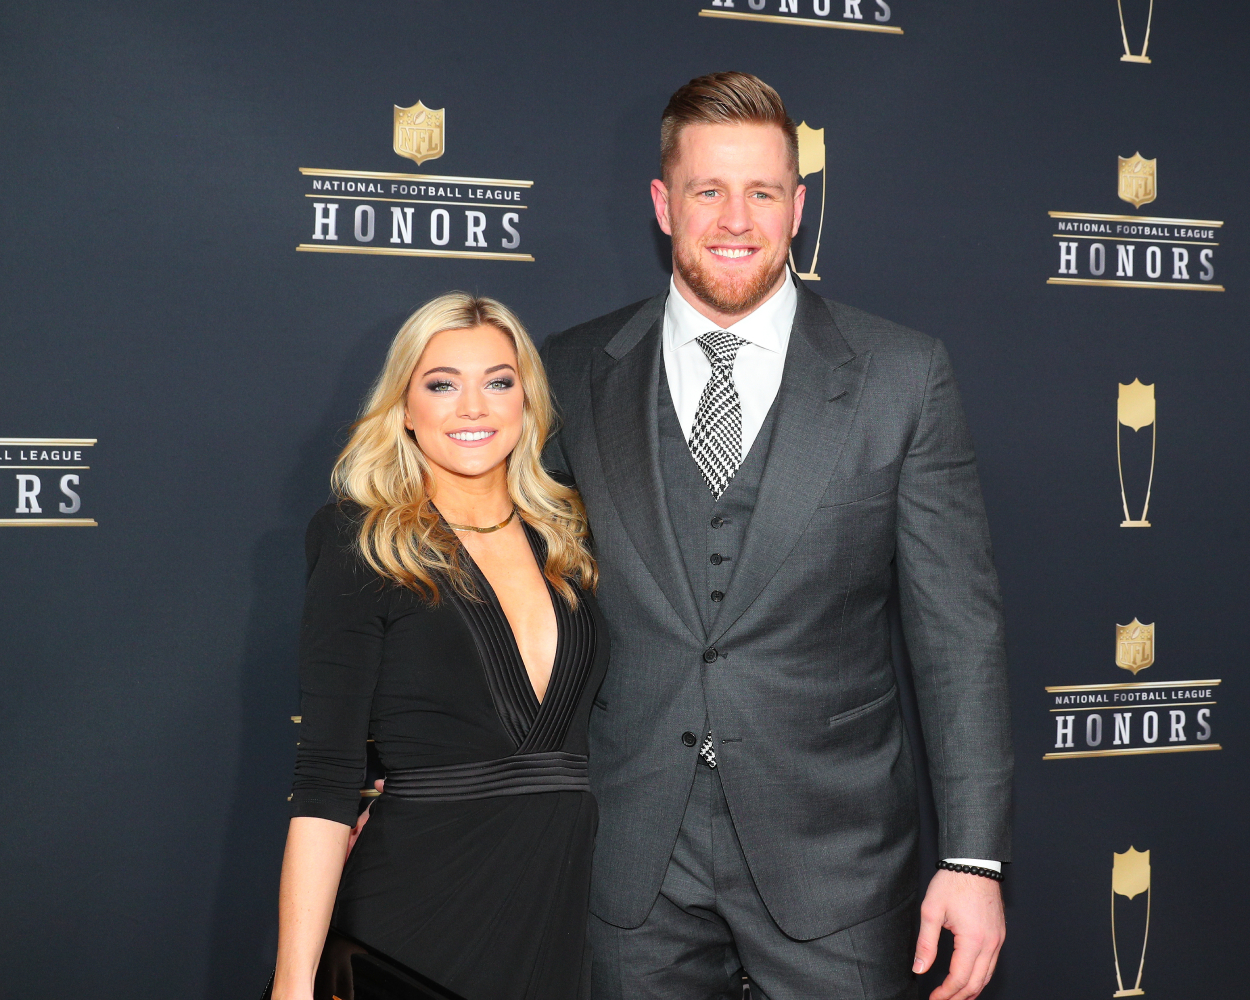 J.J. Watt May Be Headed to an NFC Playoff Team if His Wife Has Any Say